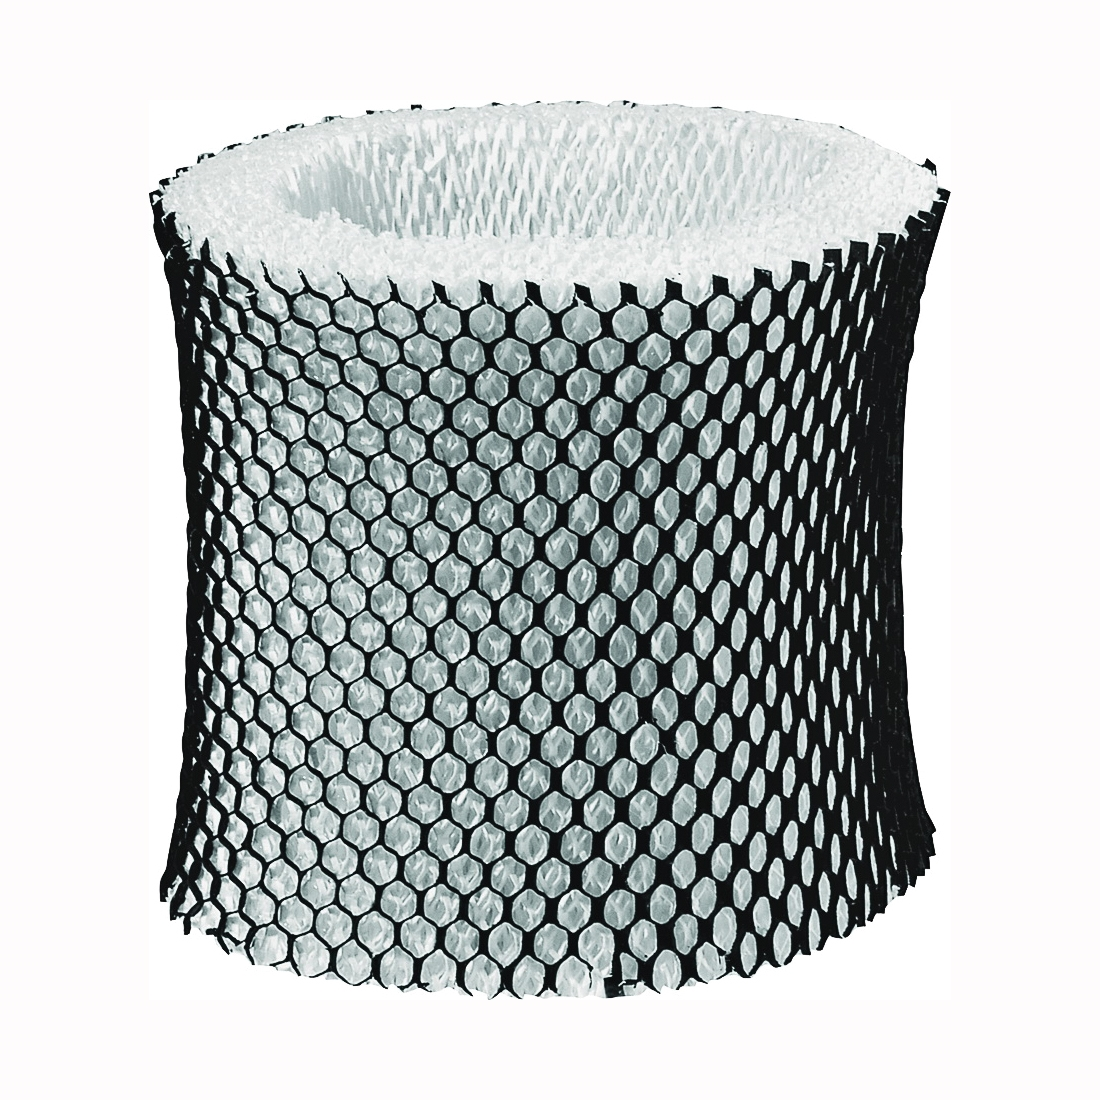 Picture of HOLMES HWF65PDQ-U Humidifier Filter, 11.3 in L, 8.6 in W, White